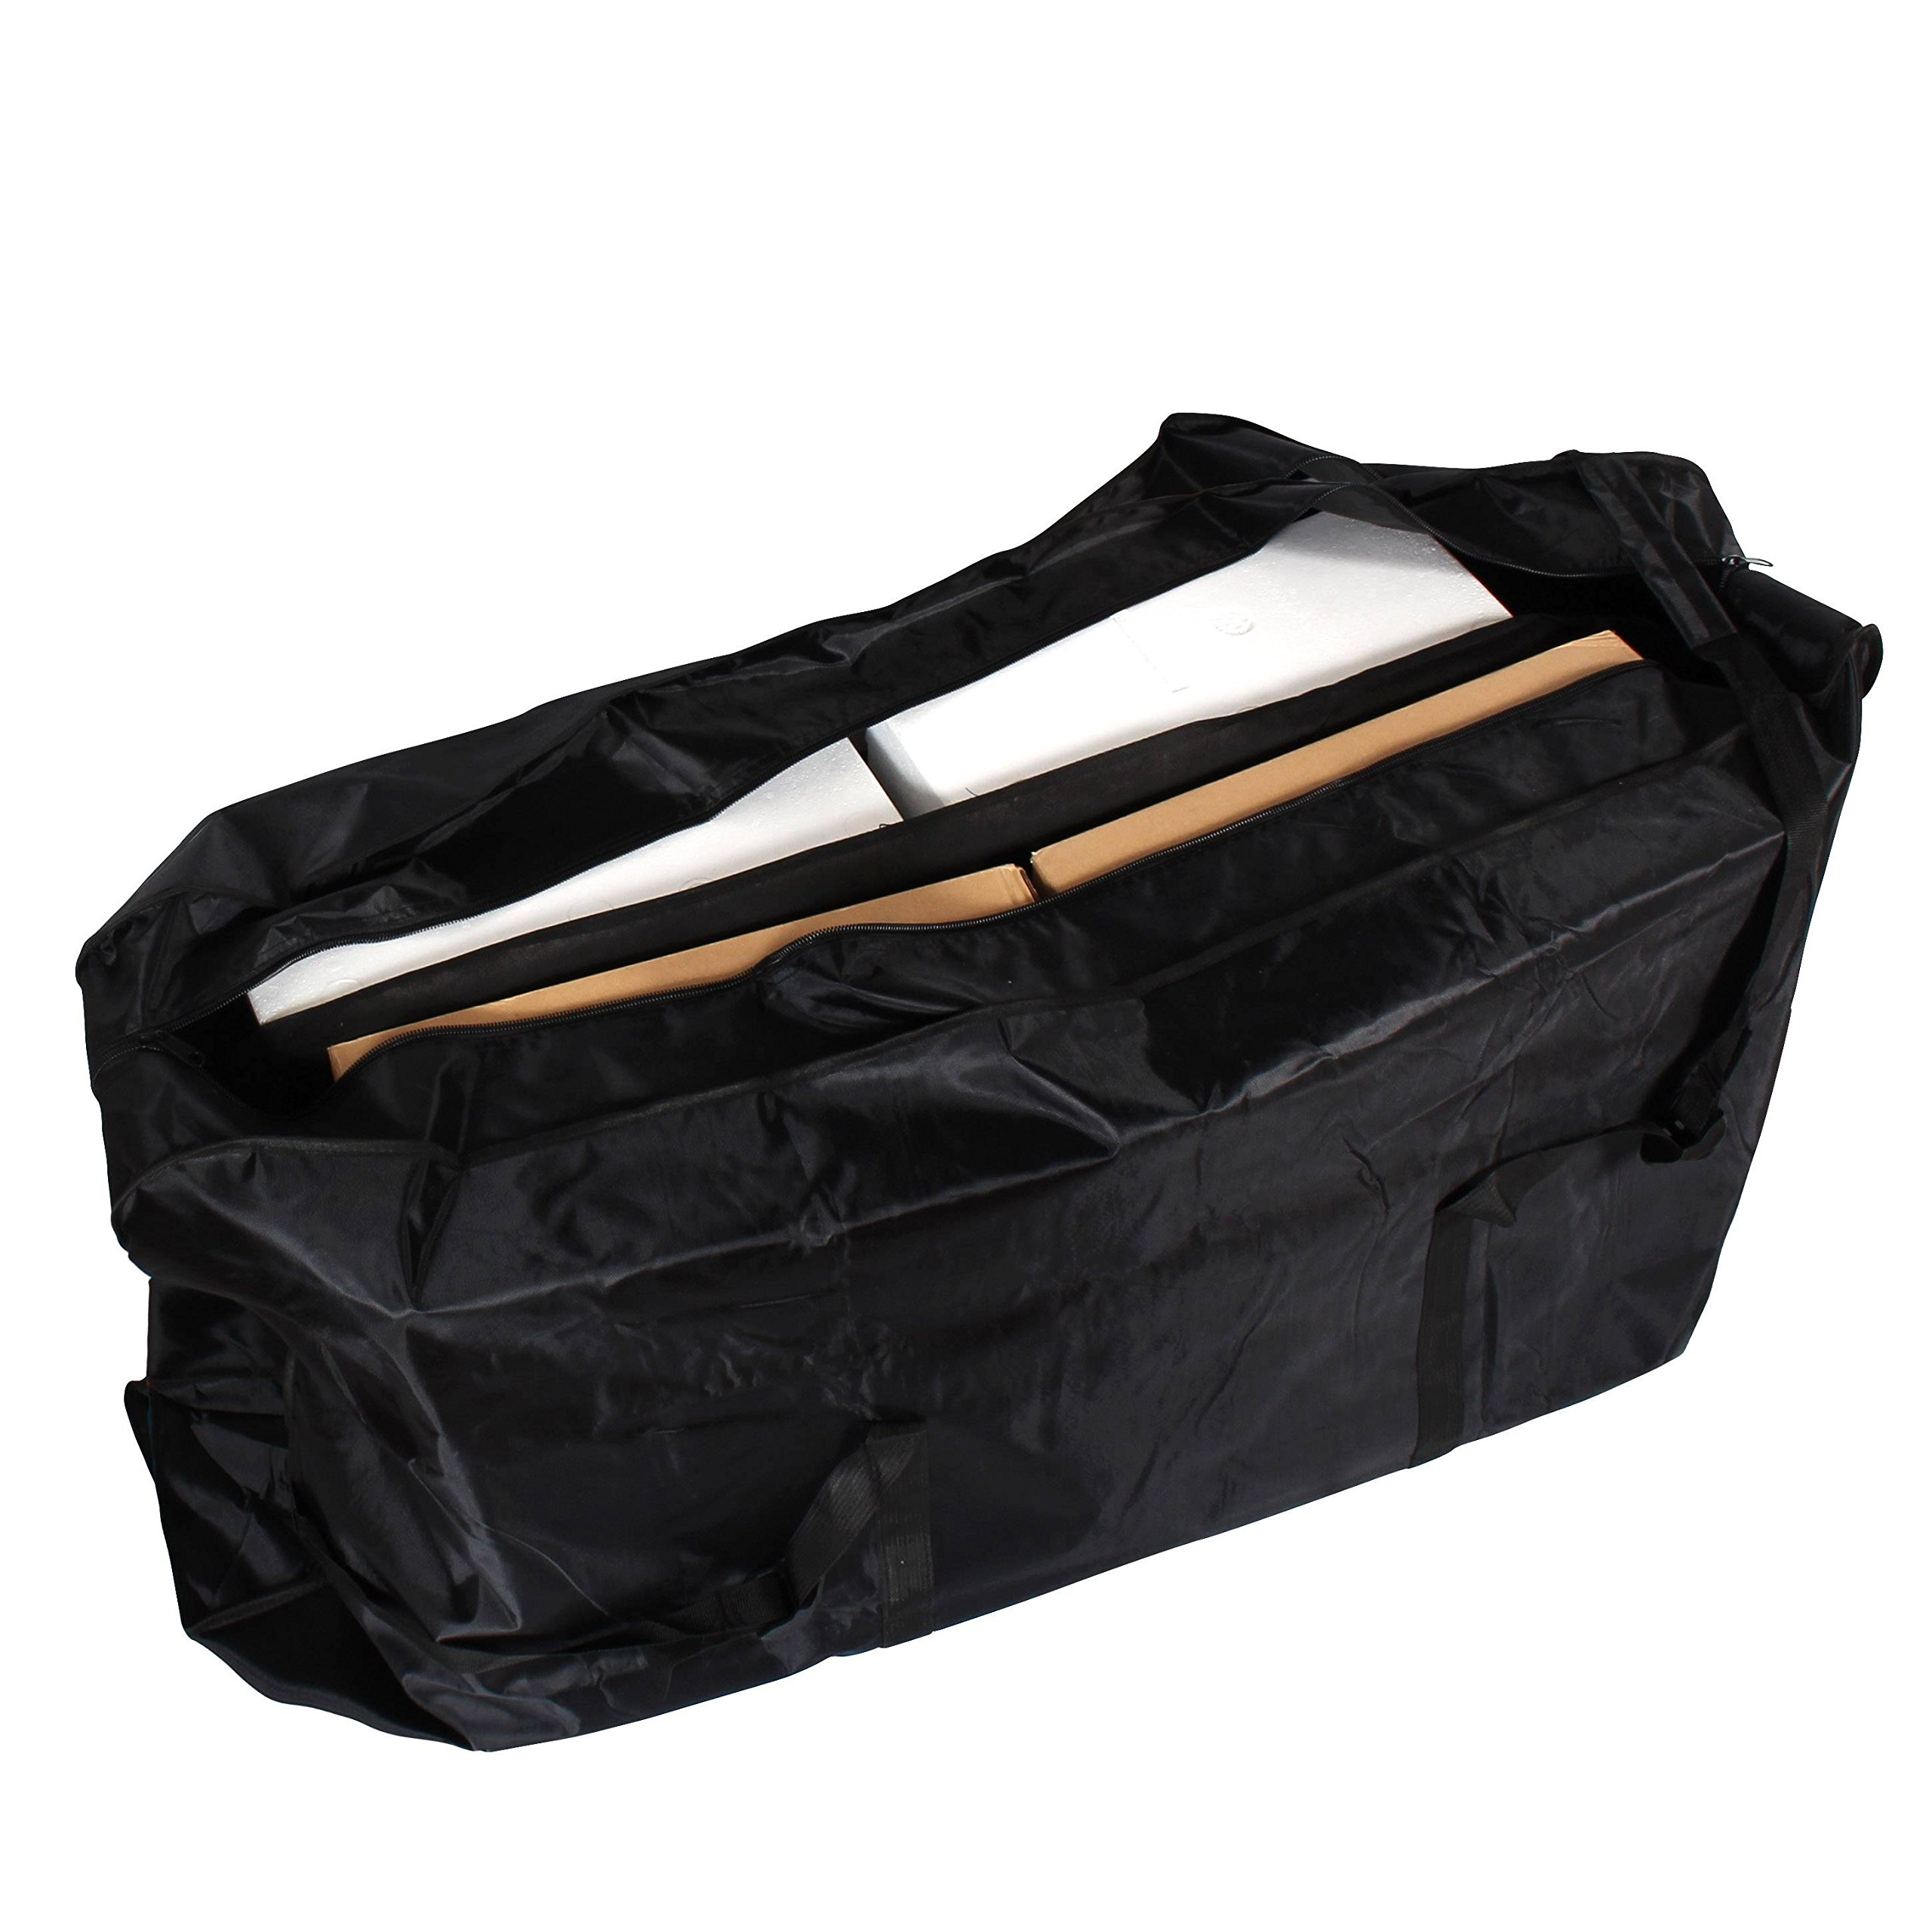 OUTERDO 26-inch Mountain Bike Bicycle Loading Bags Loading Oxford Thick Package Bags by OUTERDO (Image #2)